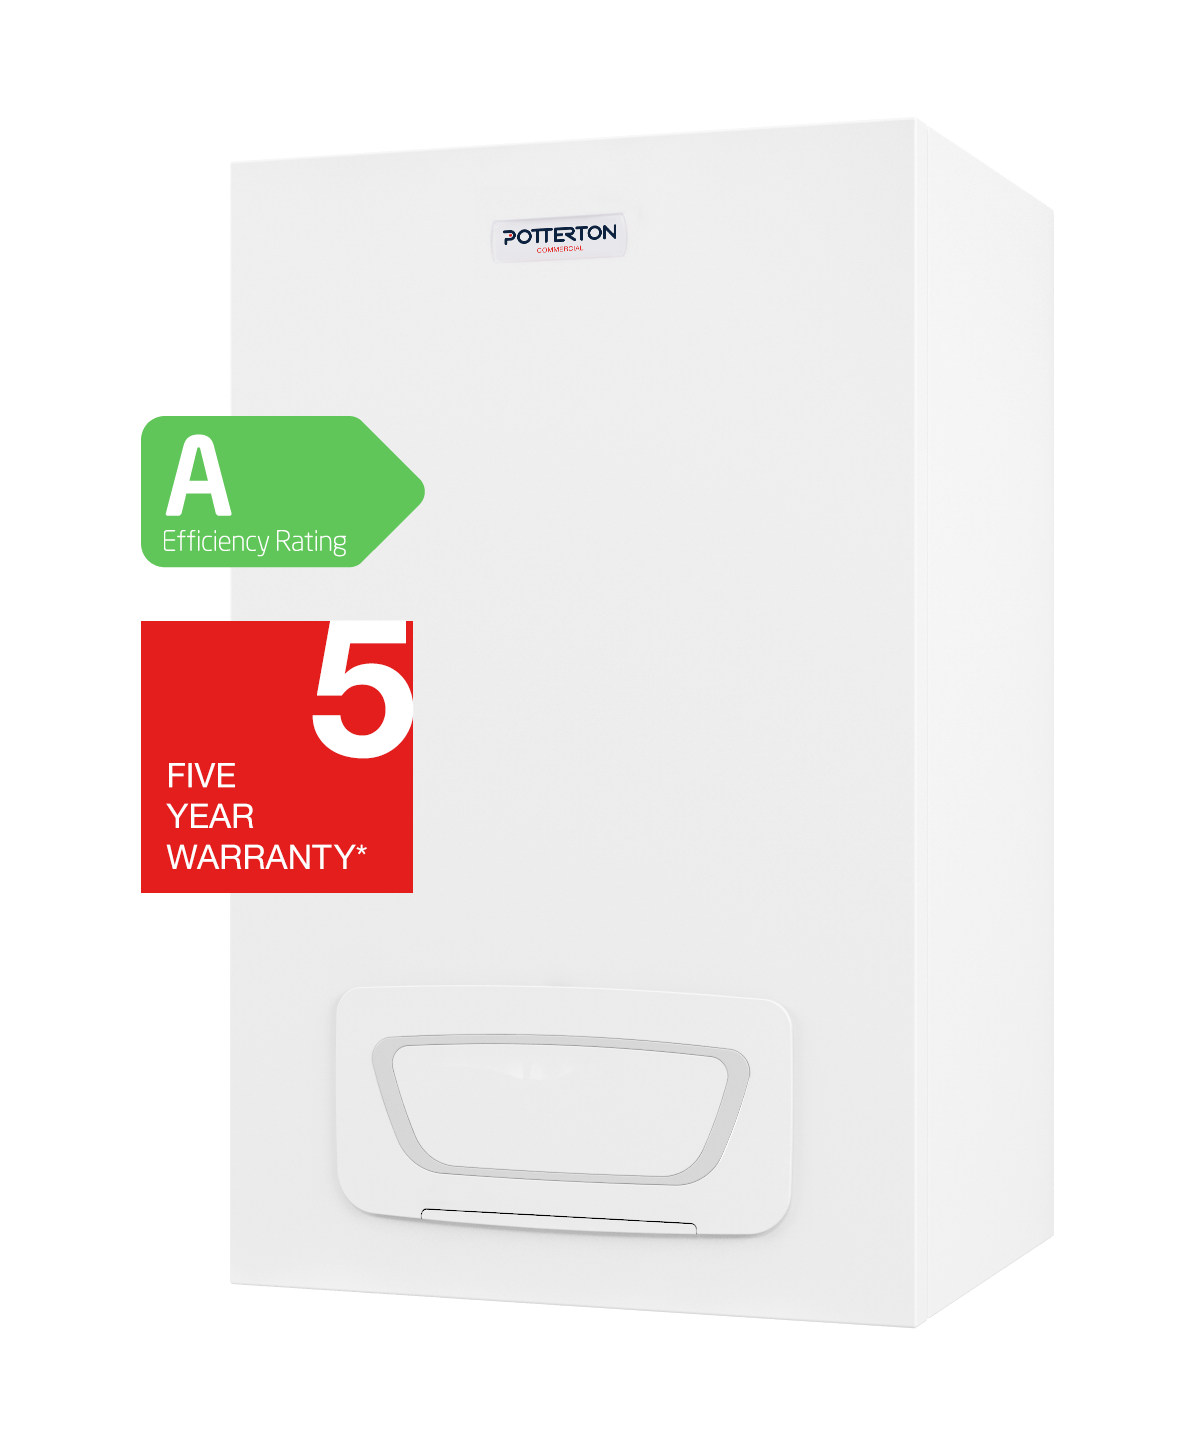 Paramount five with 5 year warranty